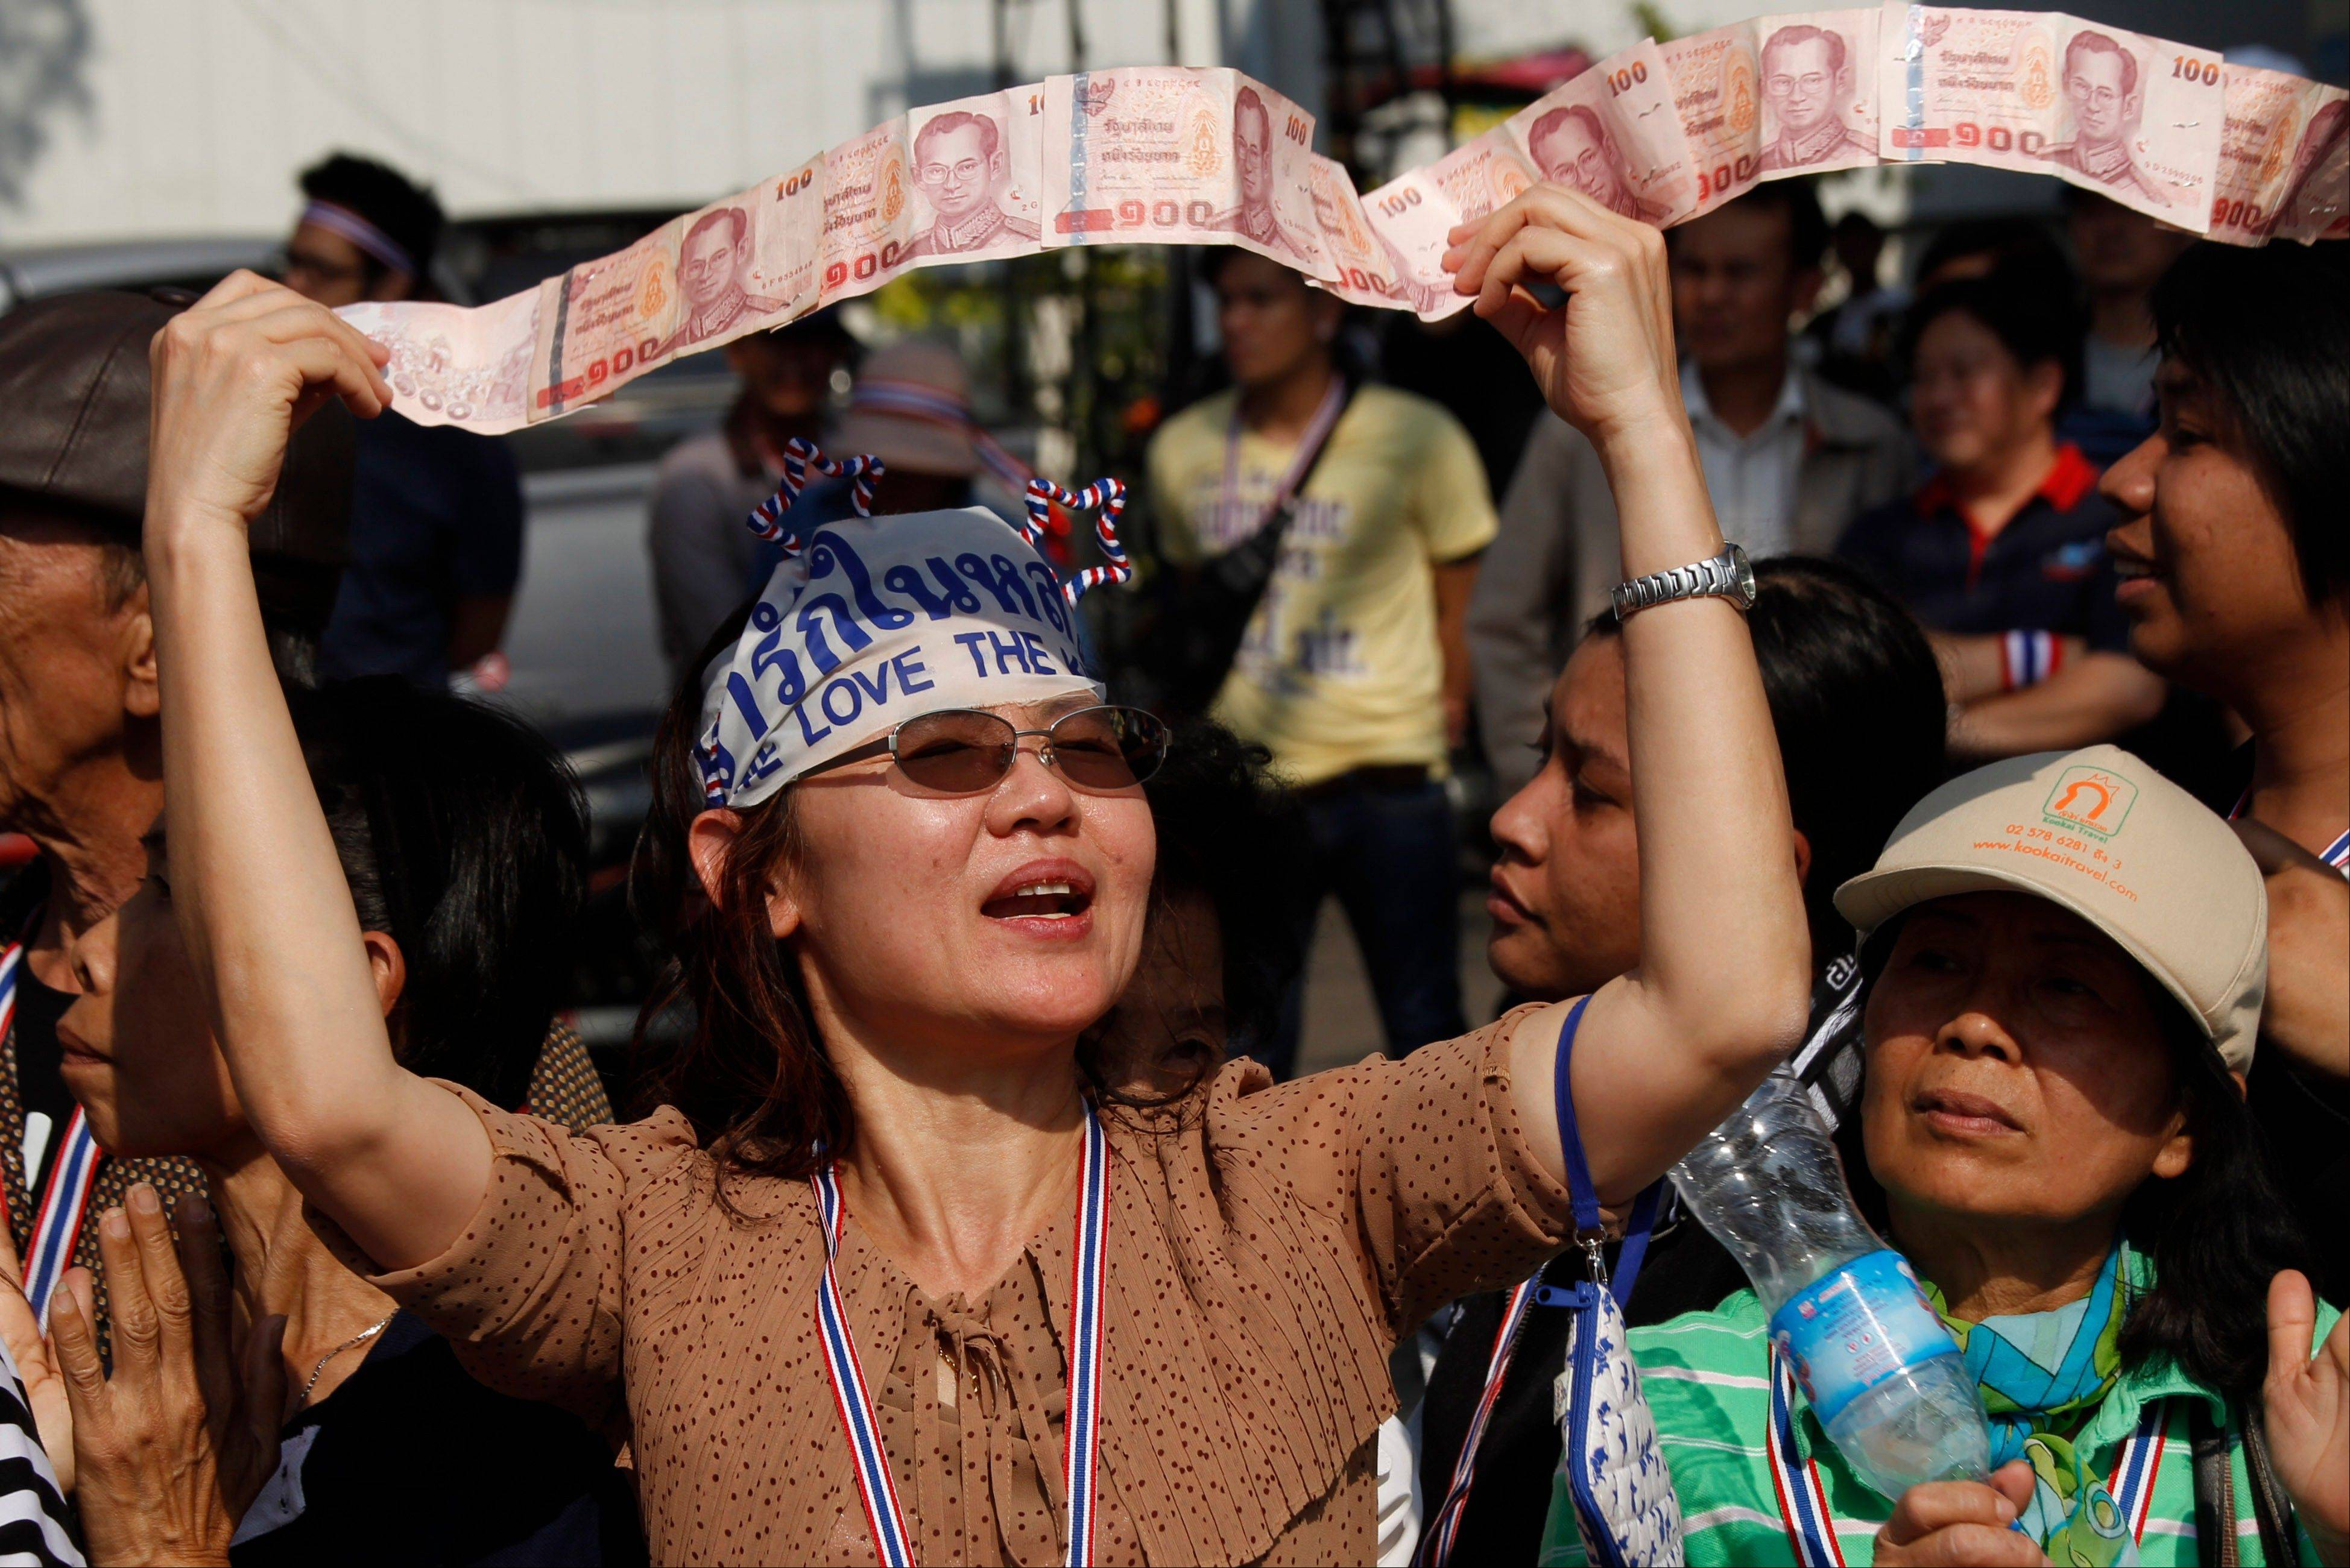 An anti-government supporter displays her donations for the cause during a street rally in central Bangkok, Thailand, Tuesday, Jan. 21, 2014. Thailand has declared a state of emergency in Bangkok and its surrounding areas to cope with anti-government protests that have stirred up violent attacks.